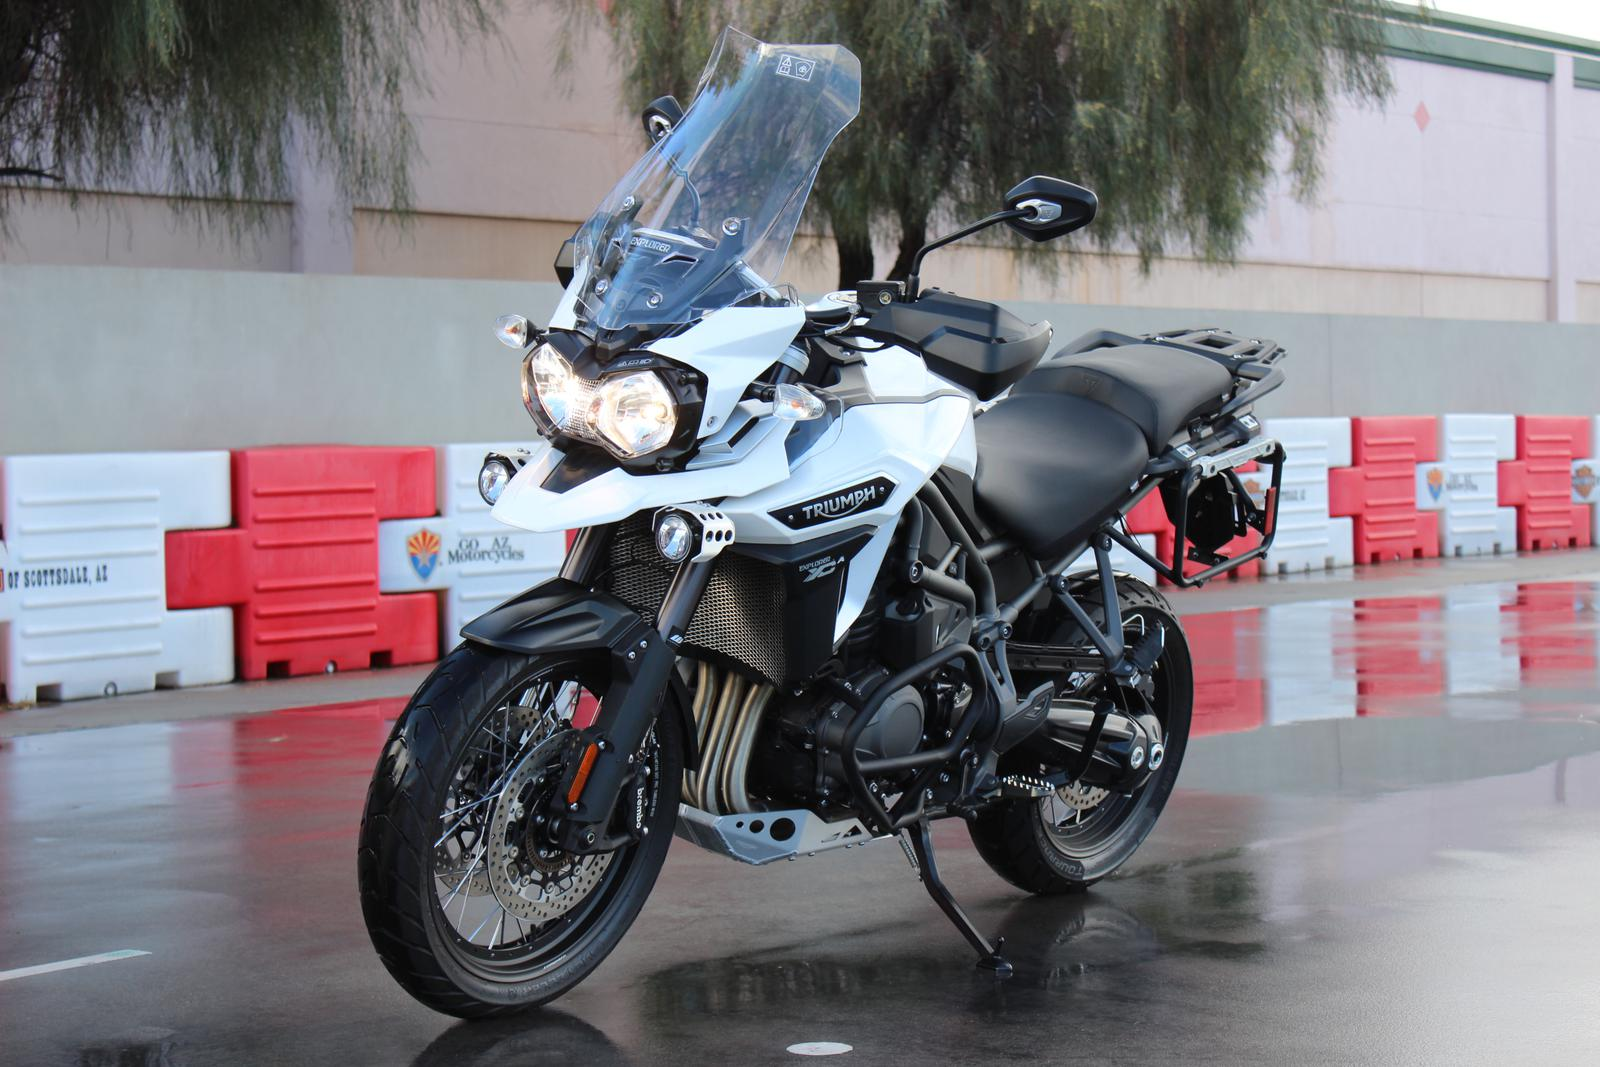 2017 triumph tiger explorer xca for sale in scottsdale, az | go az